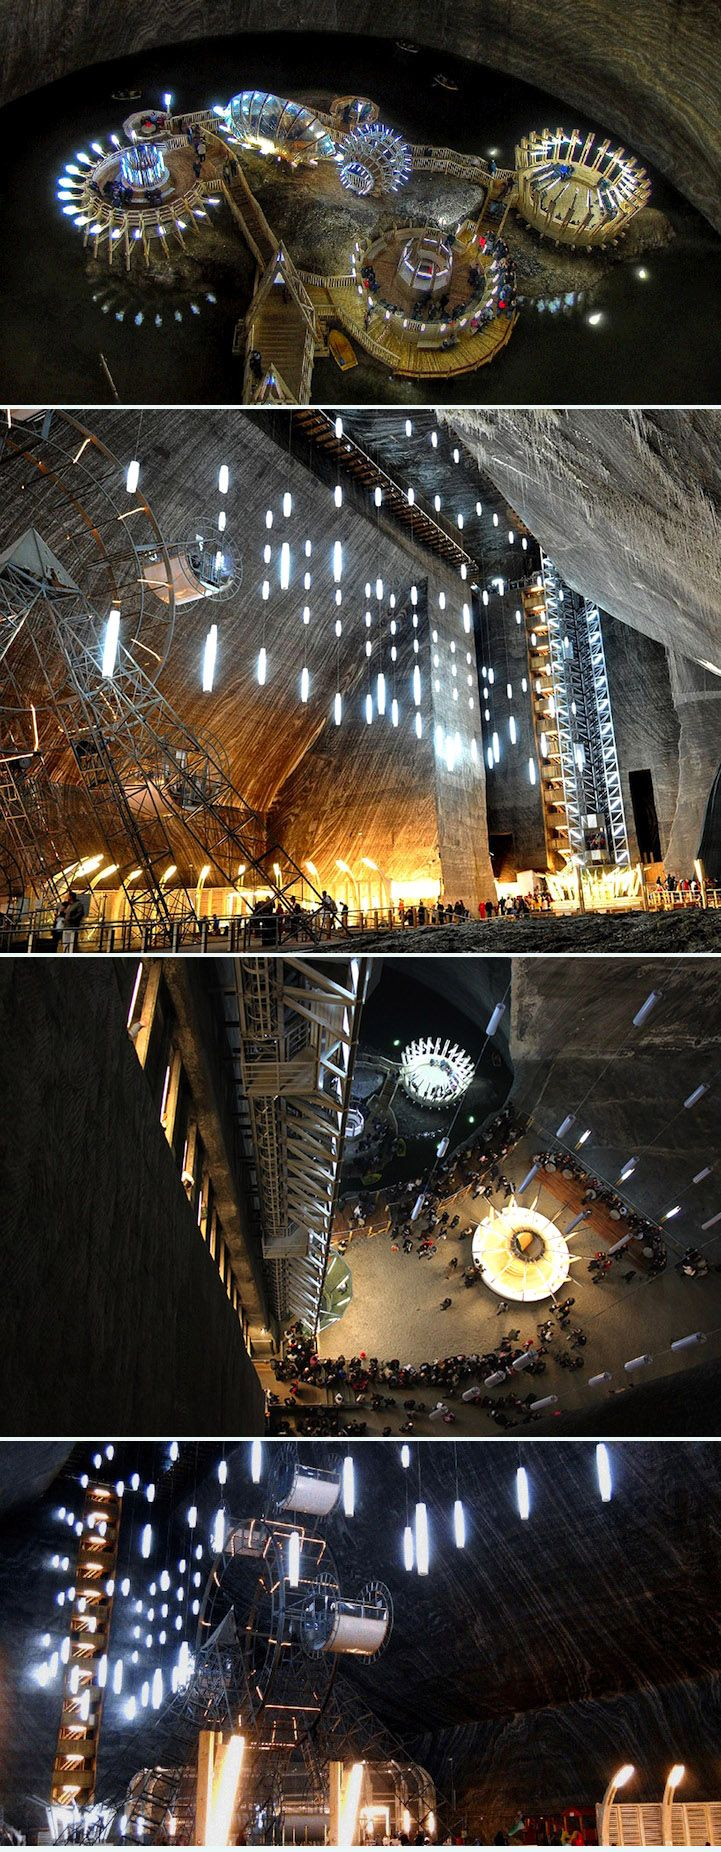 Old Romania Salt Mines Converted Into 370ft Deep Museum ( http://www.mymodernmet.com/profiles/blogs/salina-turda-salt-mines-museum )